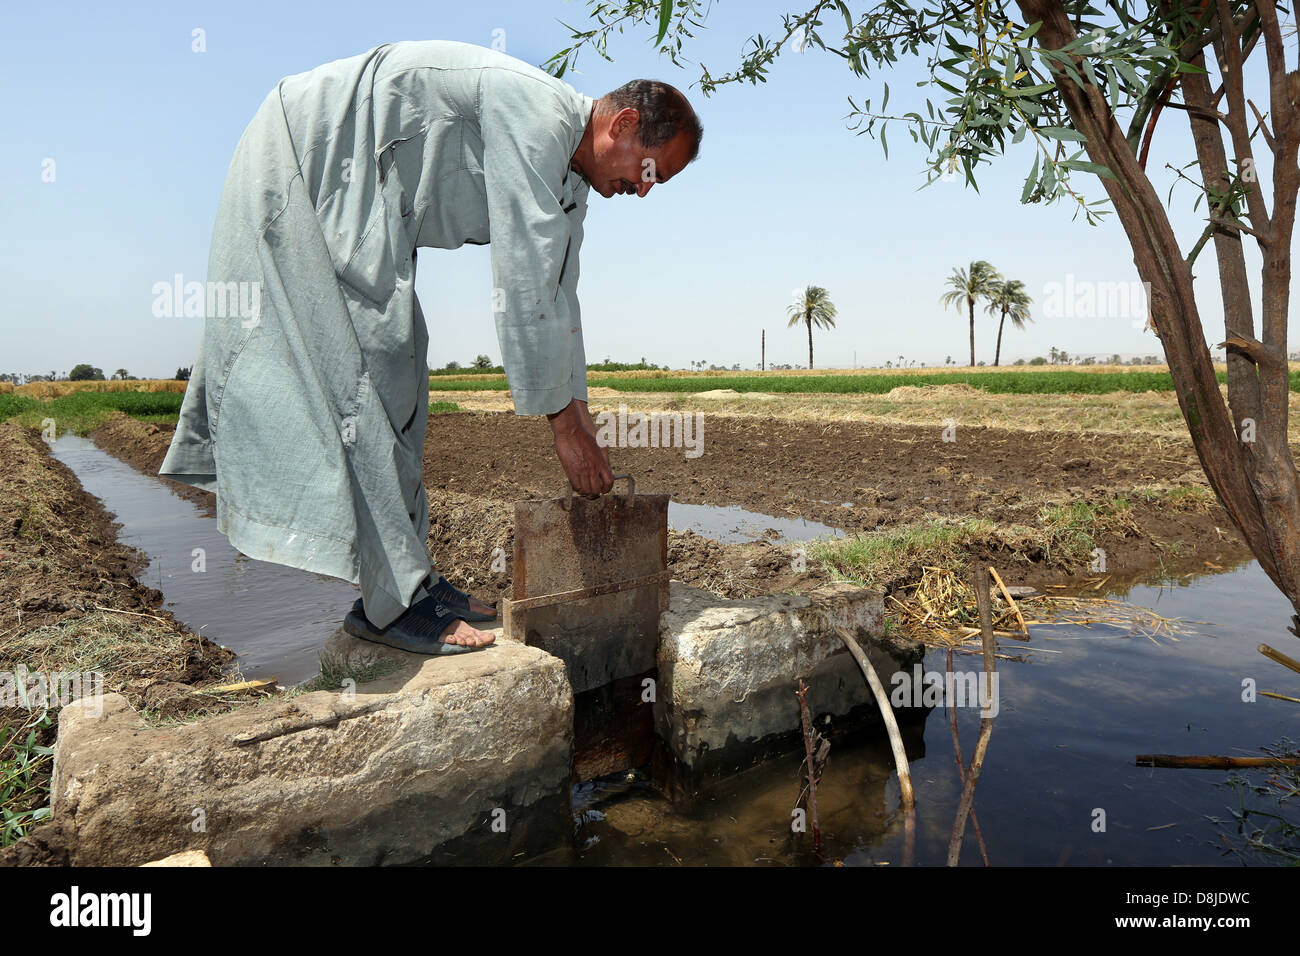 Farmer opens a smal water canal from river Nile. Irrigation system to water his farmland, Upper Egypt - Stock Image